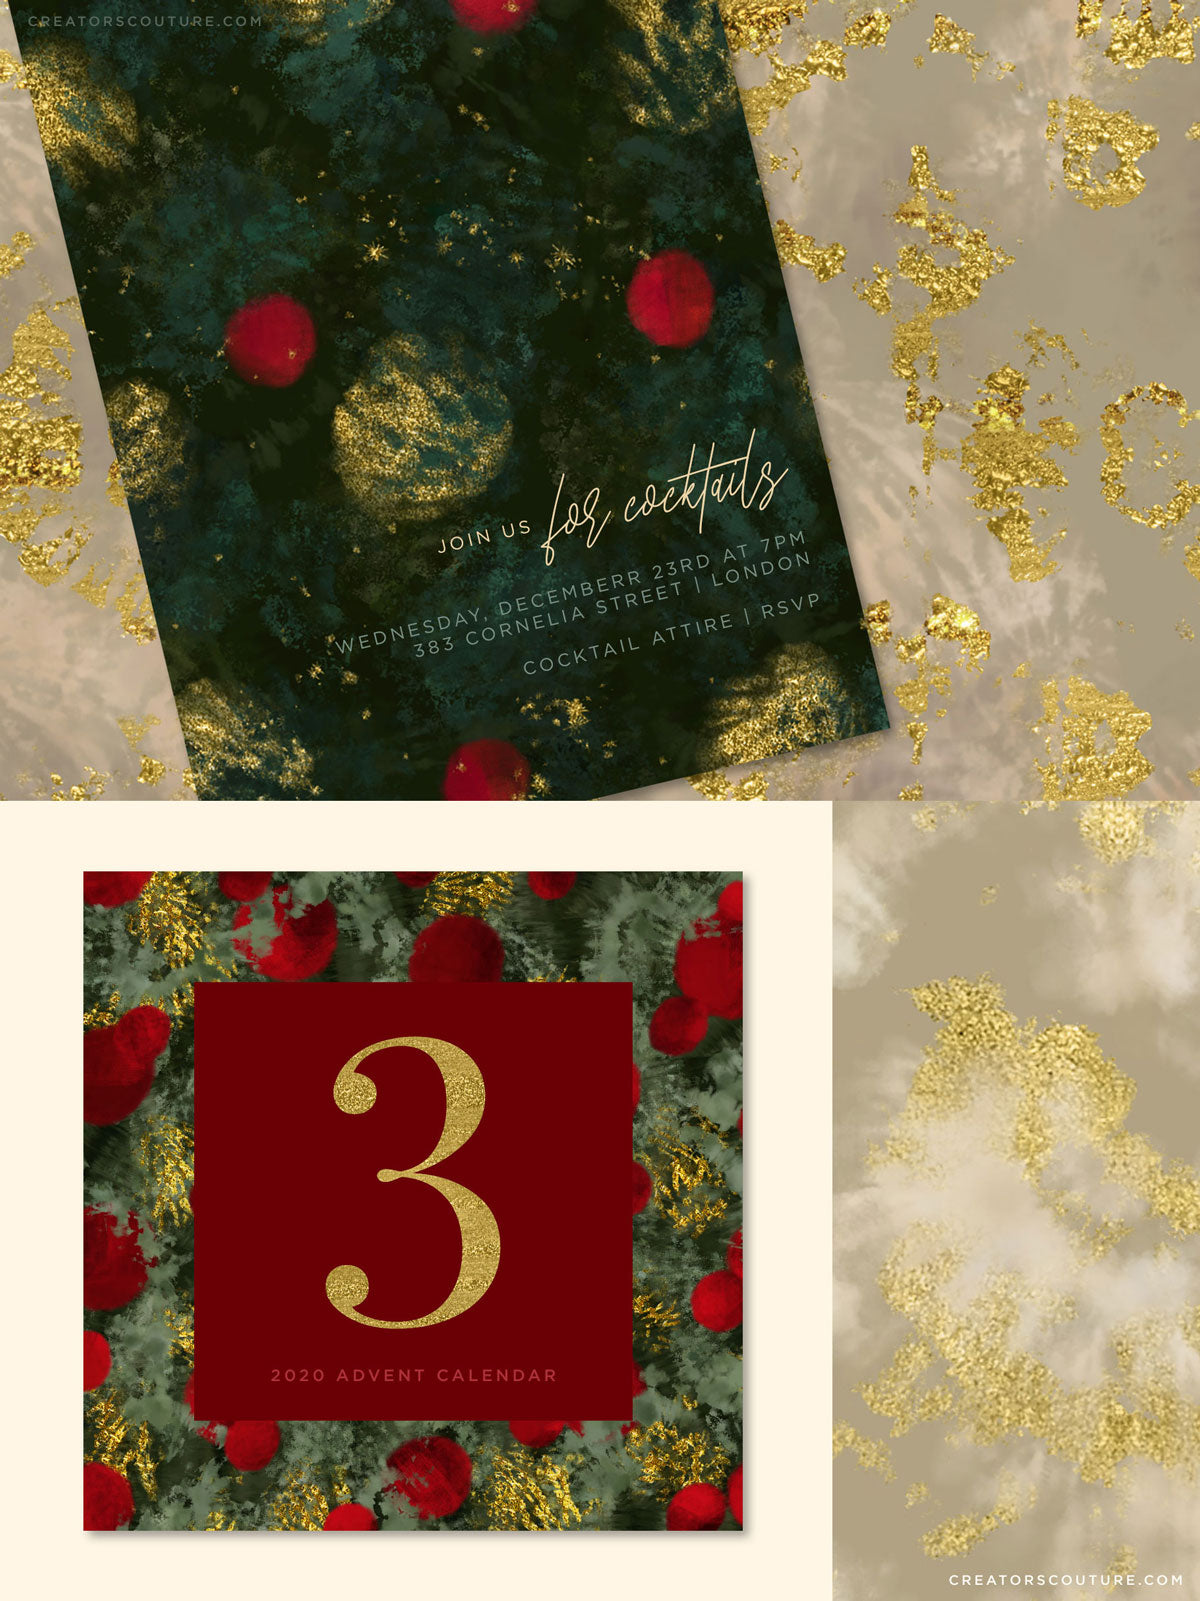 luxe christmas holiday painted backgrounds, card design, social media advent graphic